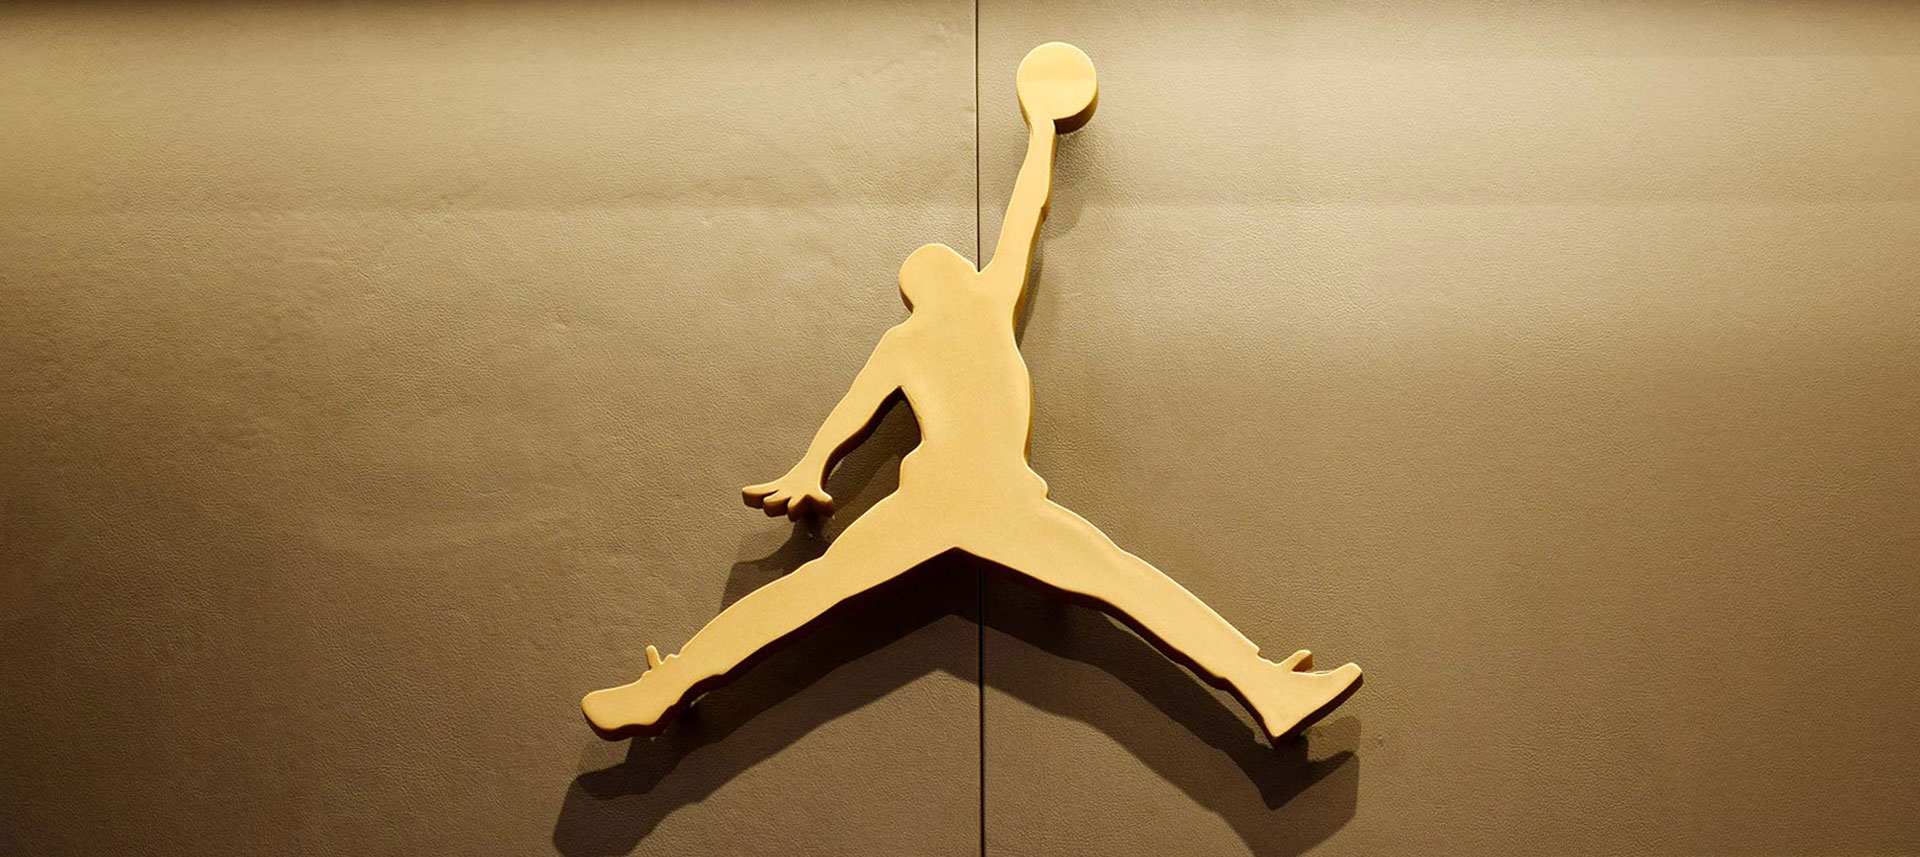 692a760aeaa434 Air Jordan is a brand of basketball shoes and athletic clothing produced by  Nike. It was created for former professional basketball player Michael  Jordan.